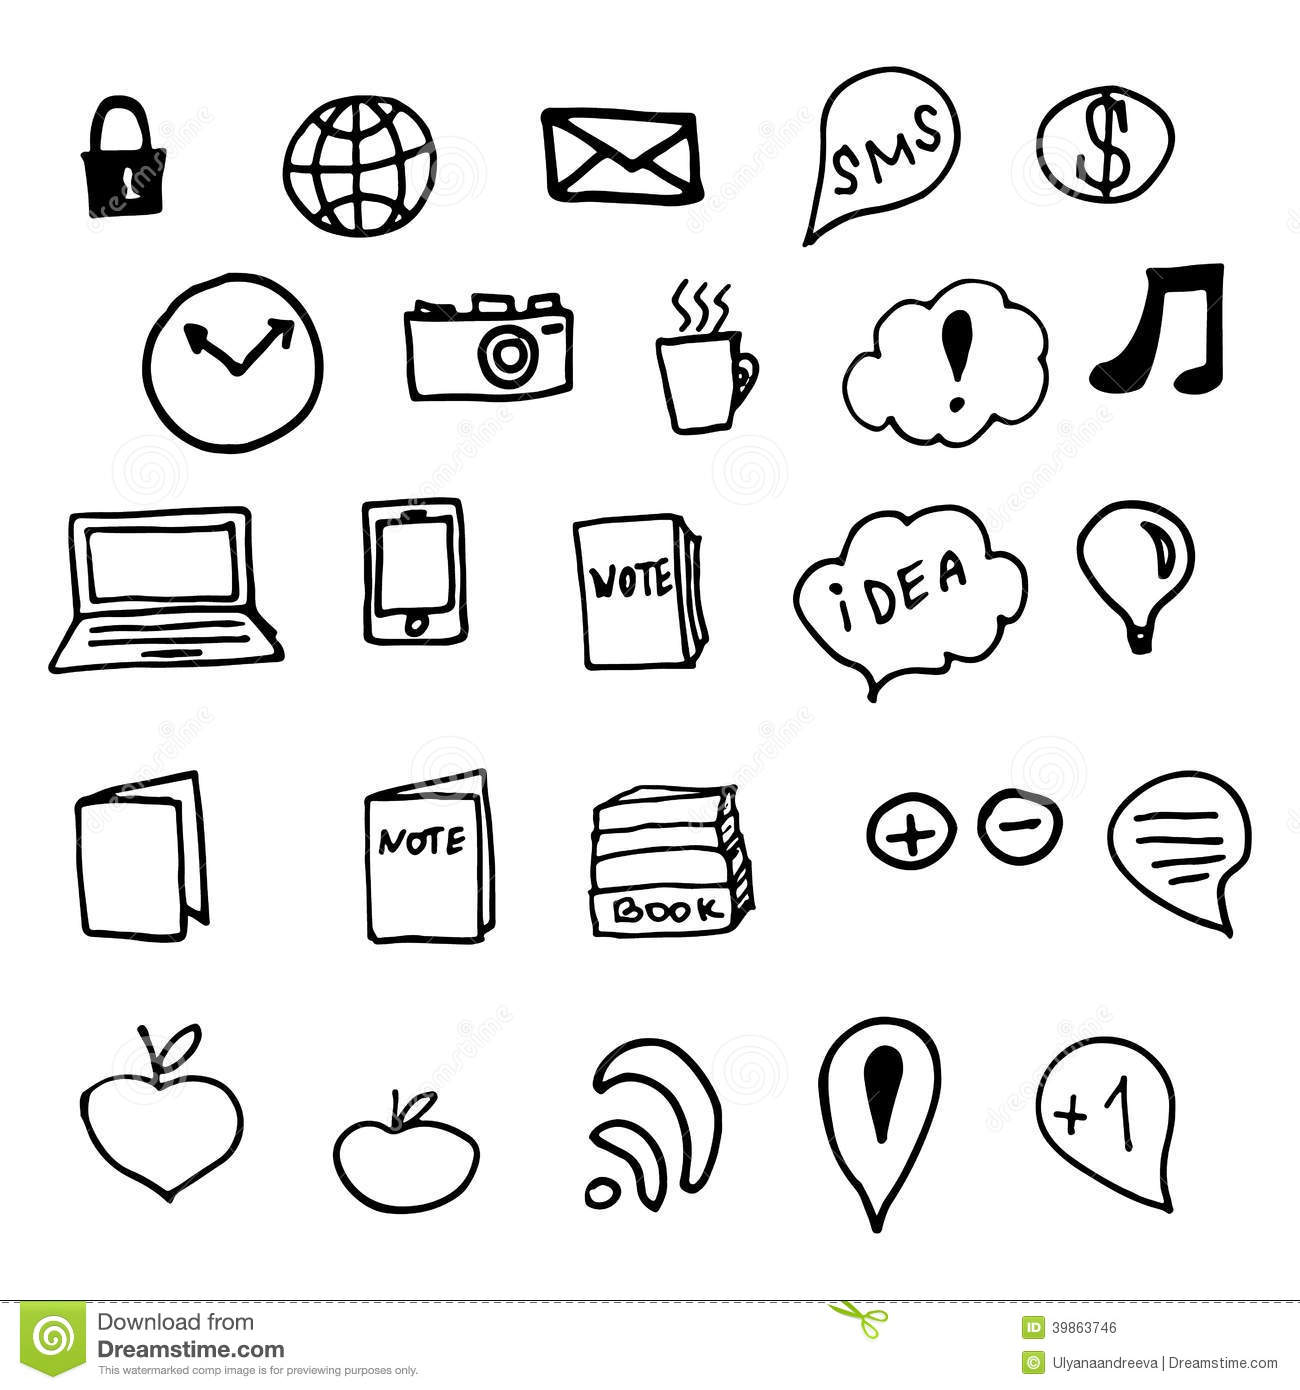 Cool Symbols To Draw On Your Hand Cute Symbols To Draw Cool Love